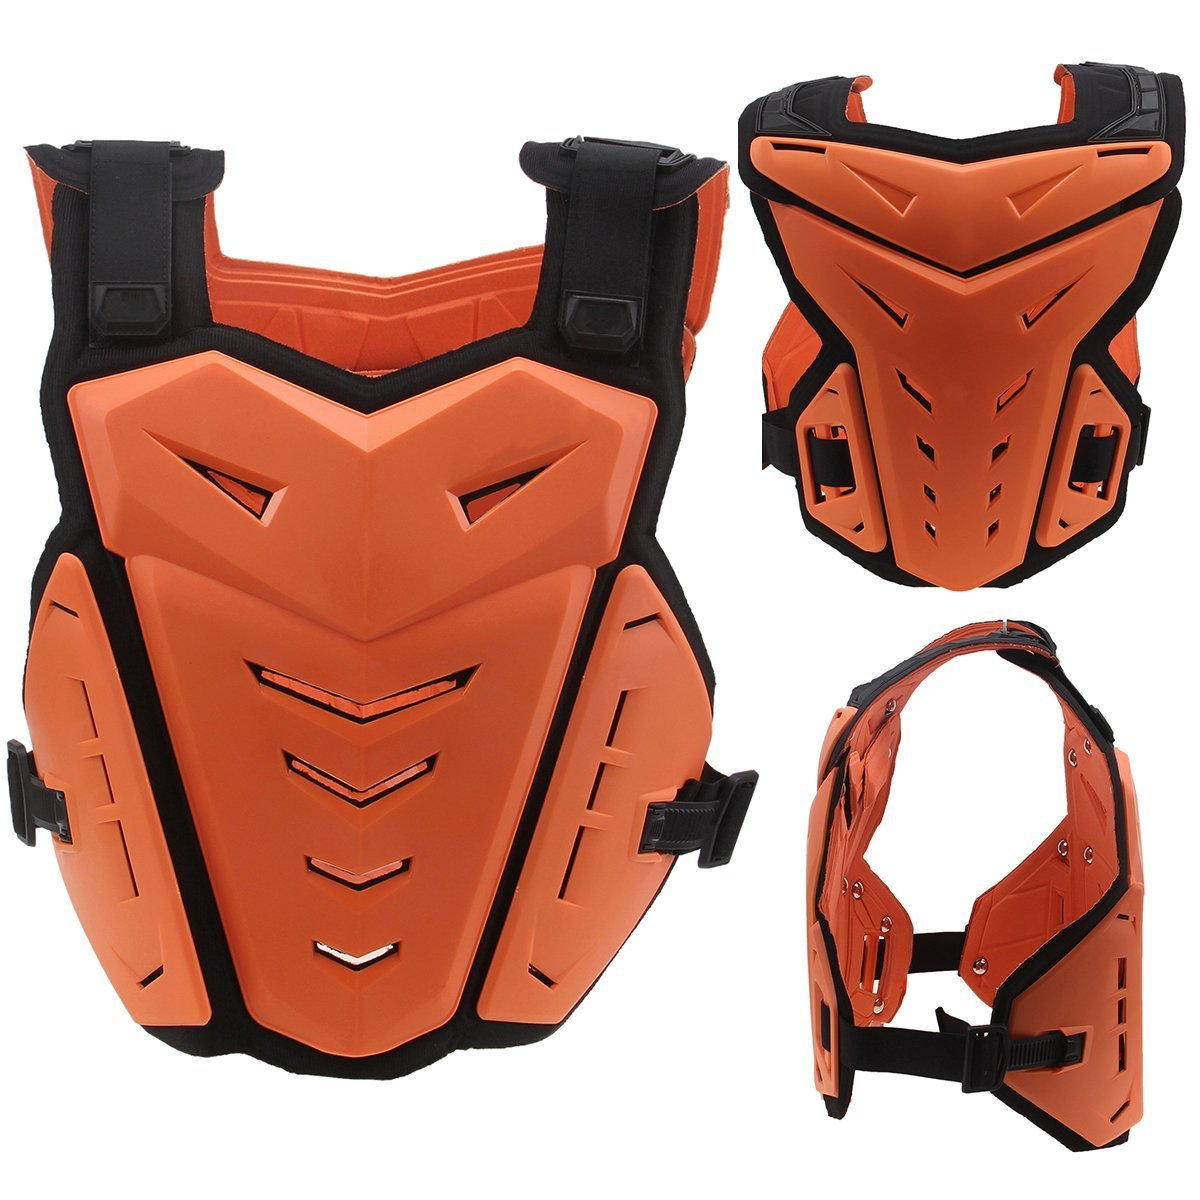 Possbay Motorcycle Body Armor Gear Back Chest Protectors Motocross Dirt Bike Unisex S-XXL For Riding Cycling Skating Skiing Scooter